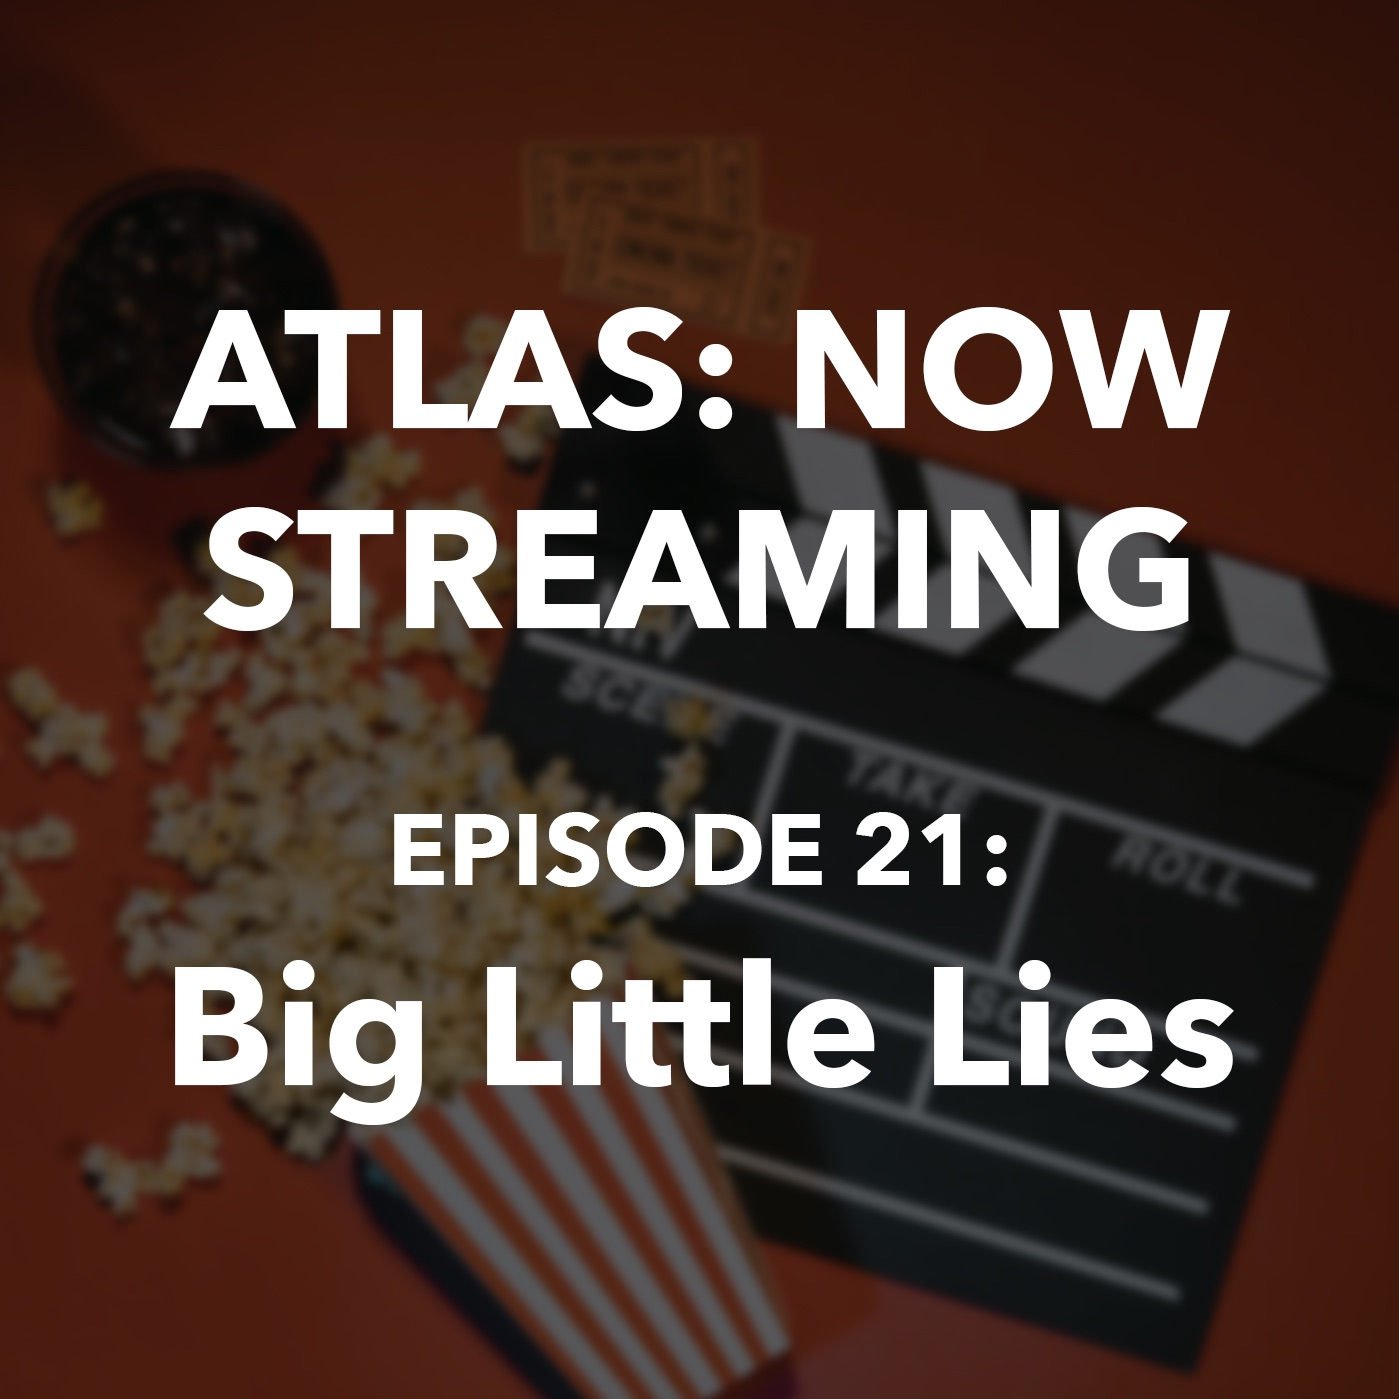 Atlas: Now Streaming Ep 21 - Big Little Lies